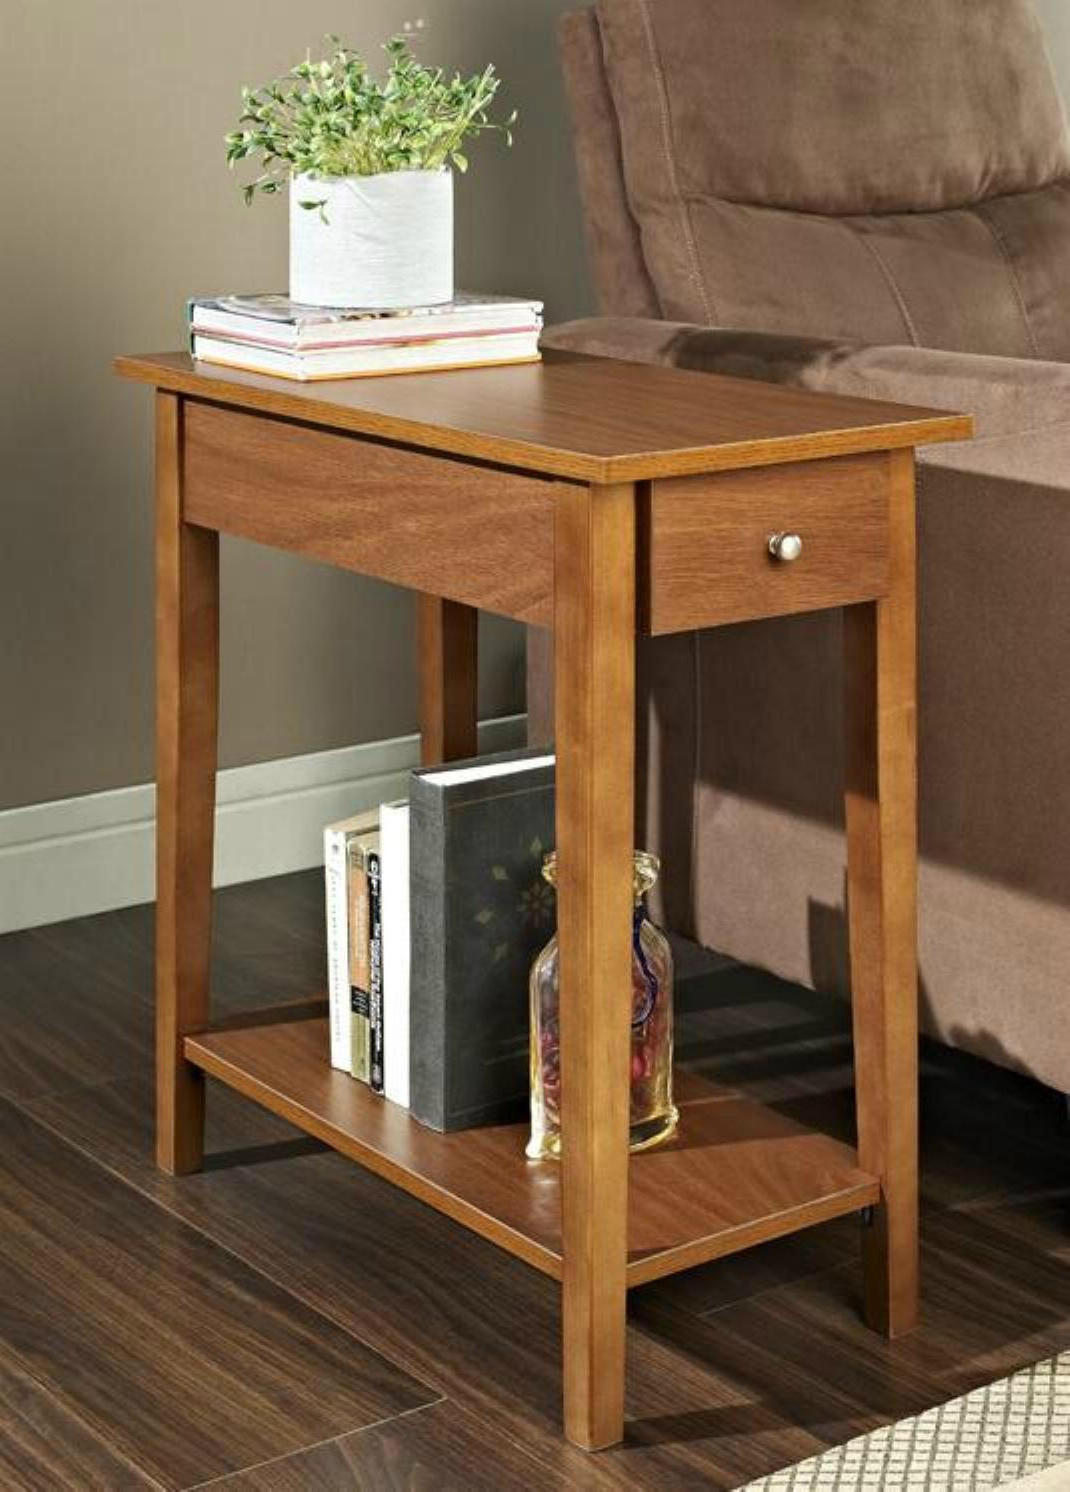 Small Wooden Tables ~ End tables for living room ideas on a budget